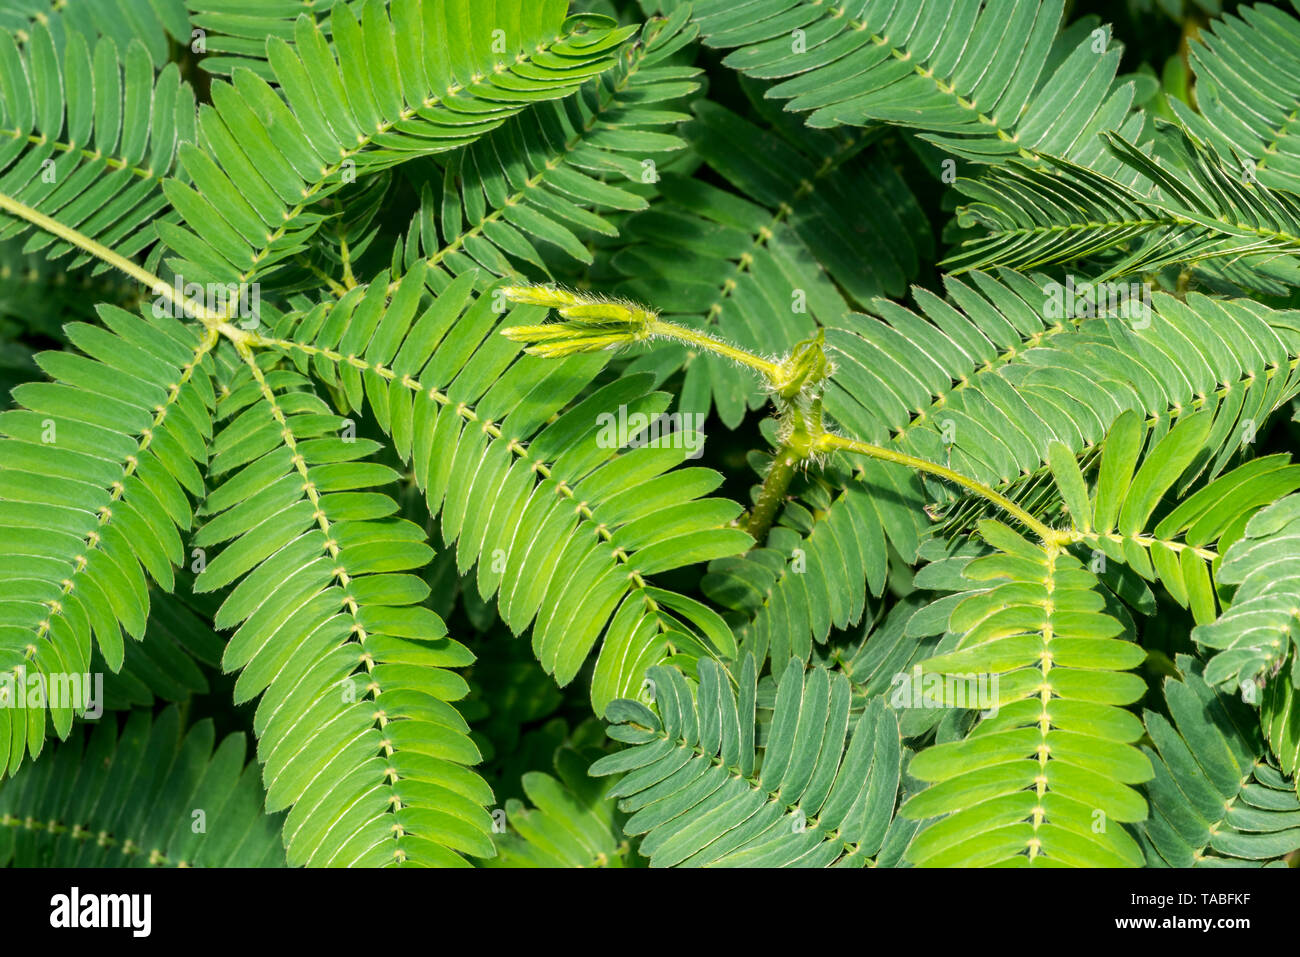 Sensitive plant / sleepy plant / touch-me-not (Mimosa pudica) close-up of leaflets, native to South America and Central America - Stock Image